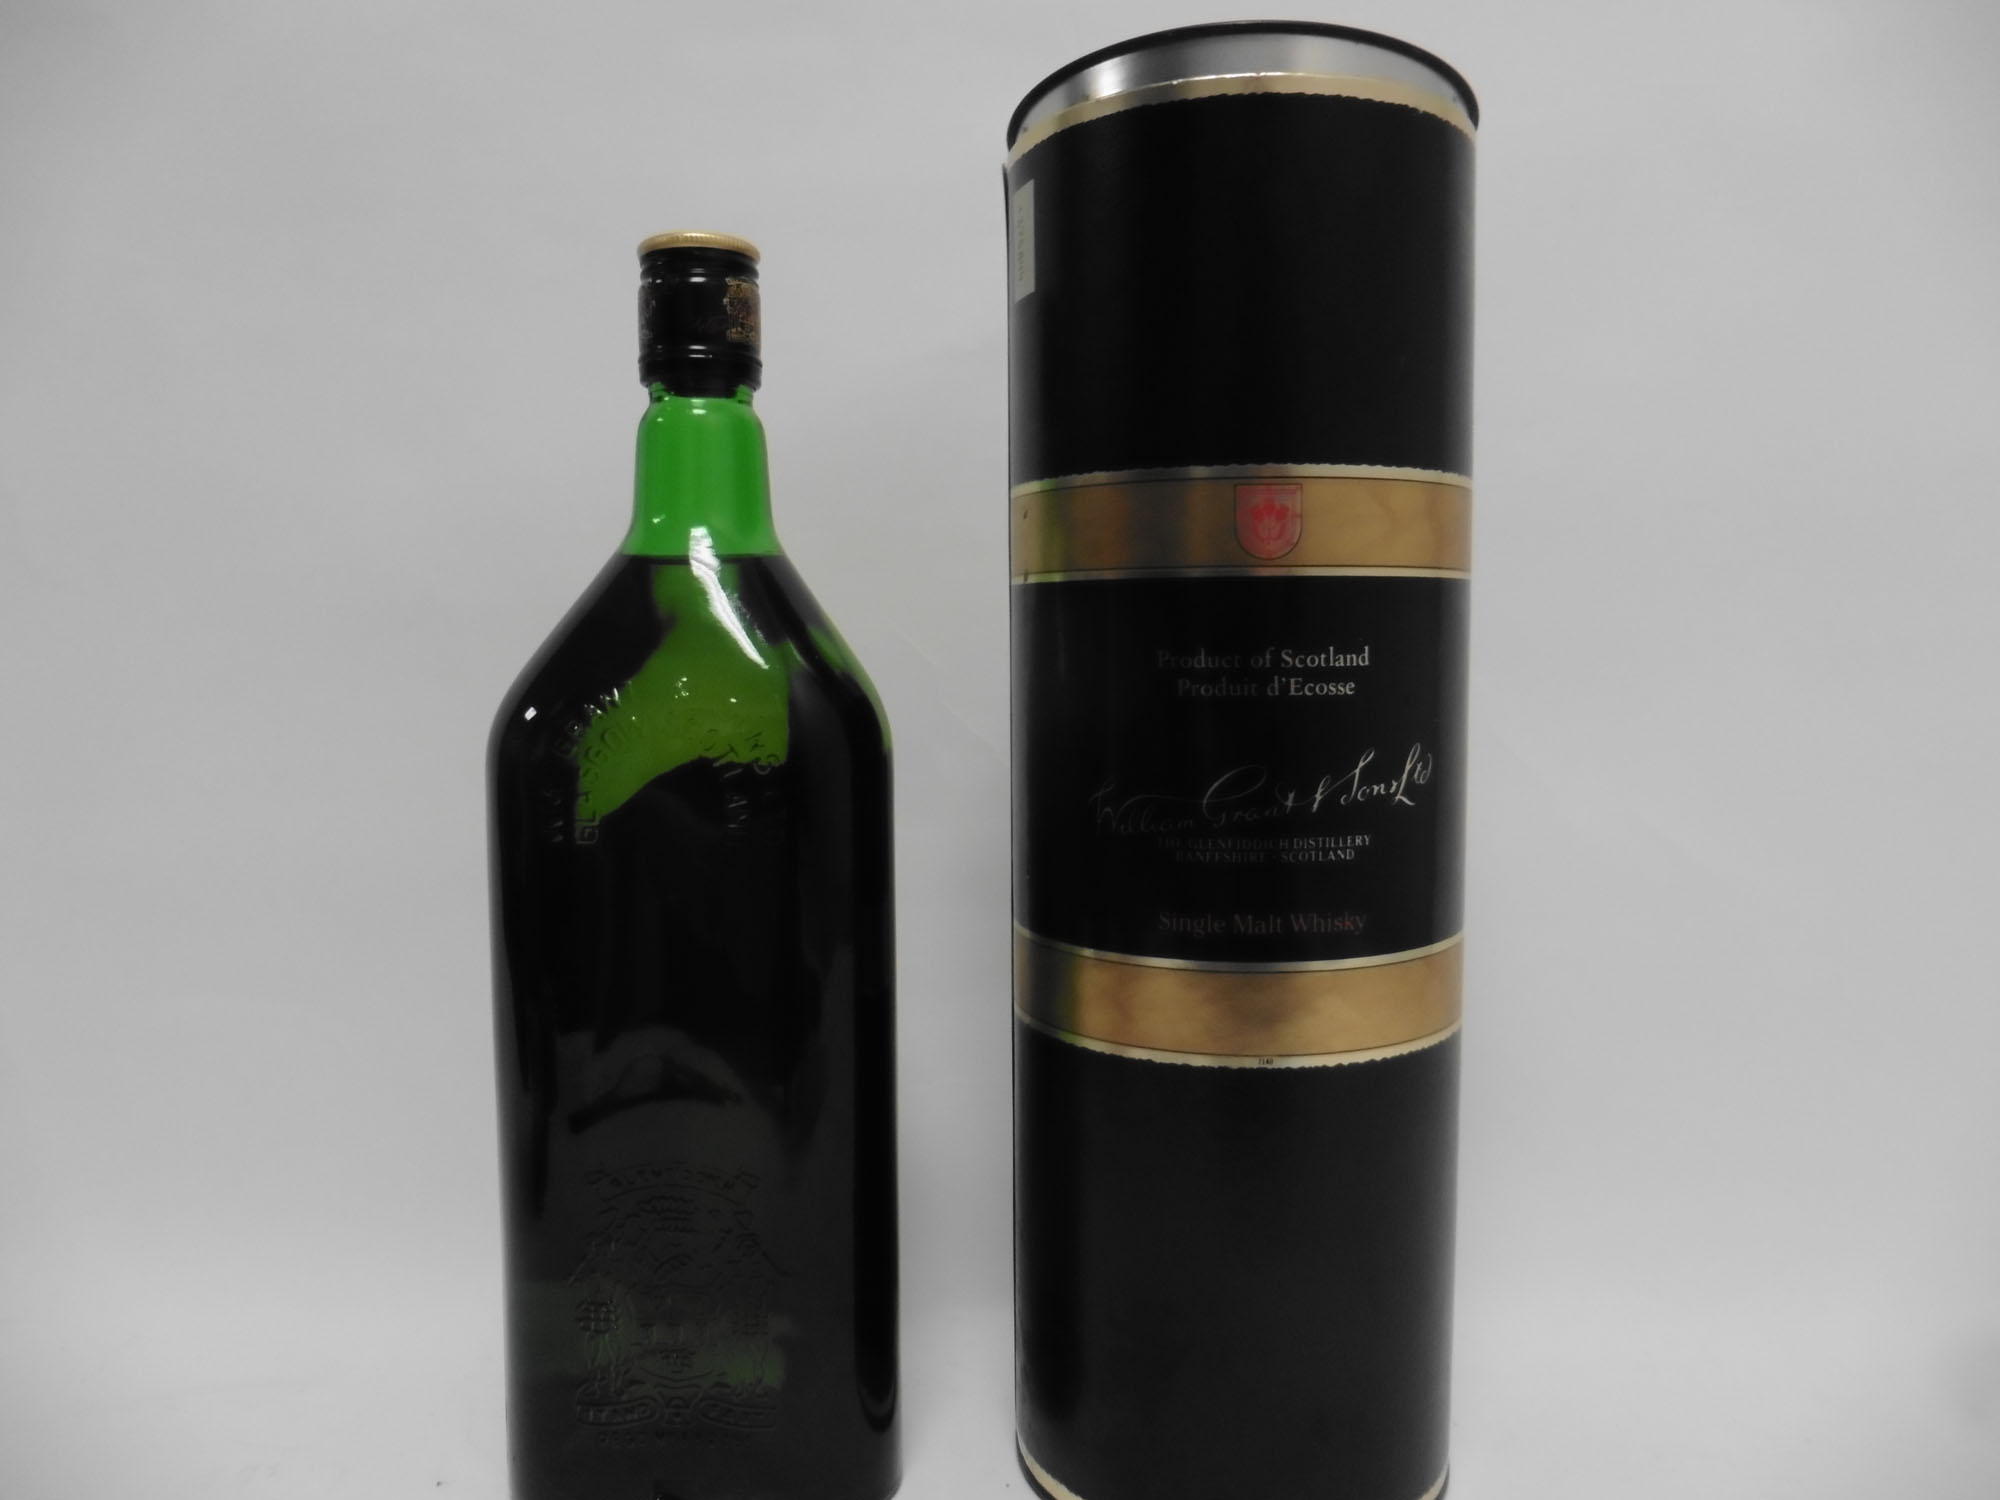 A bottle of Glenfiddich Special Old Reserve Pure Single Malt Scotch Whisky with carton, - Image 2 of 2